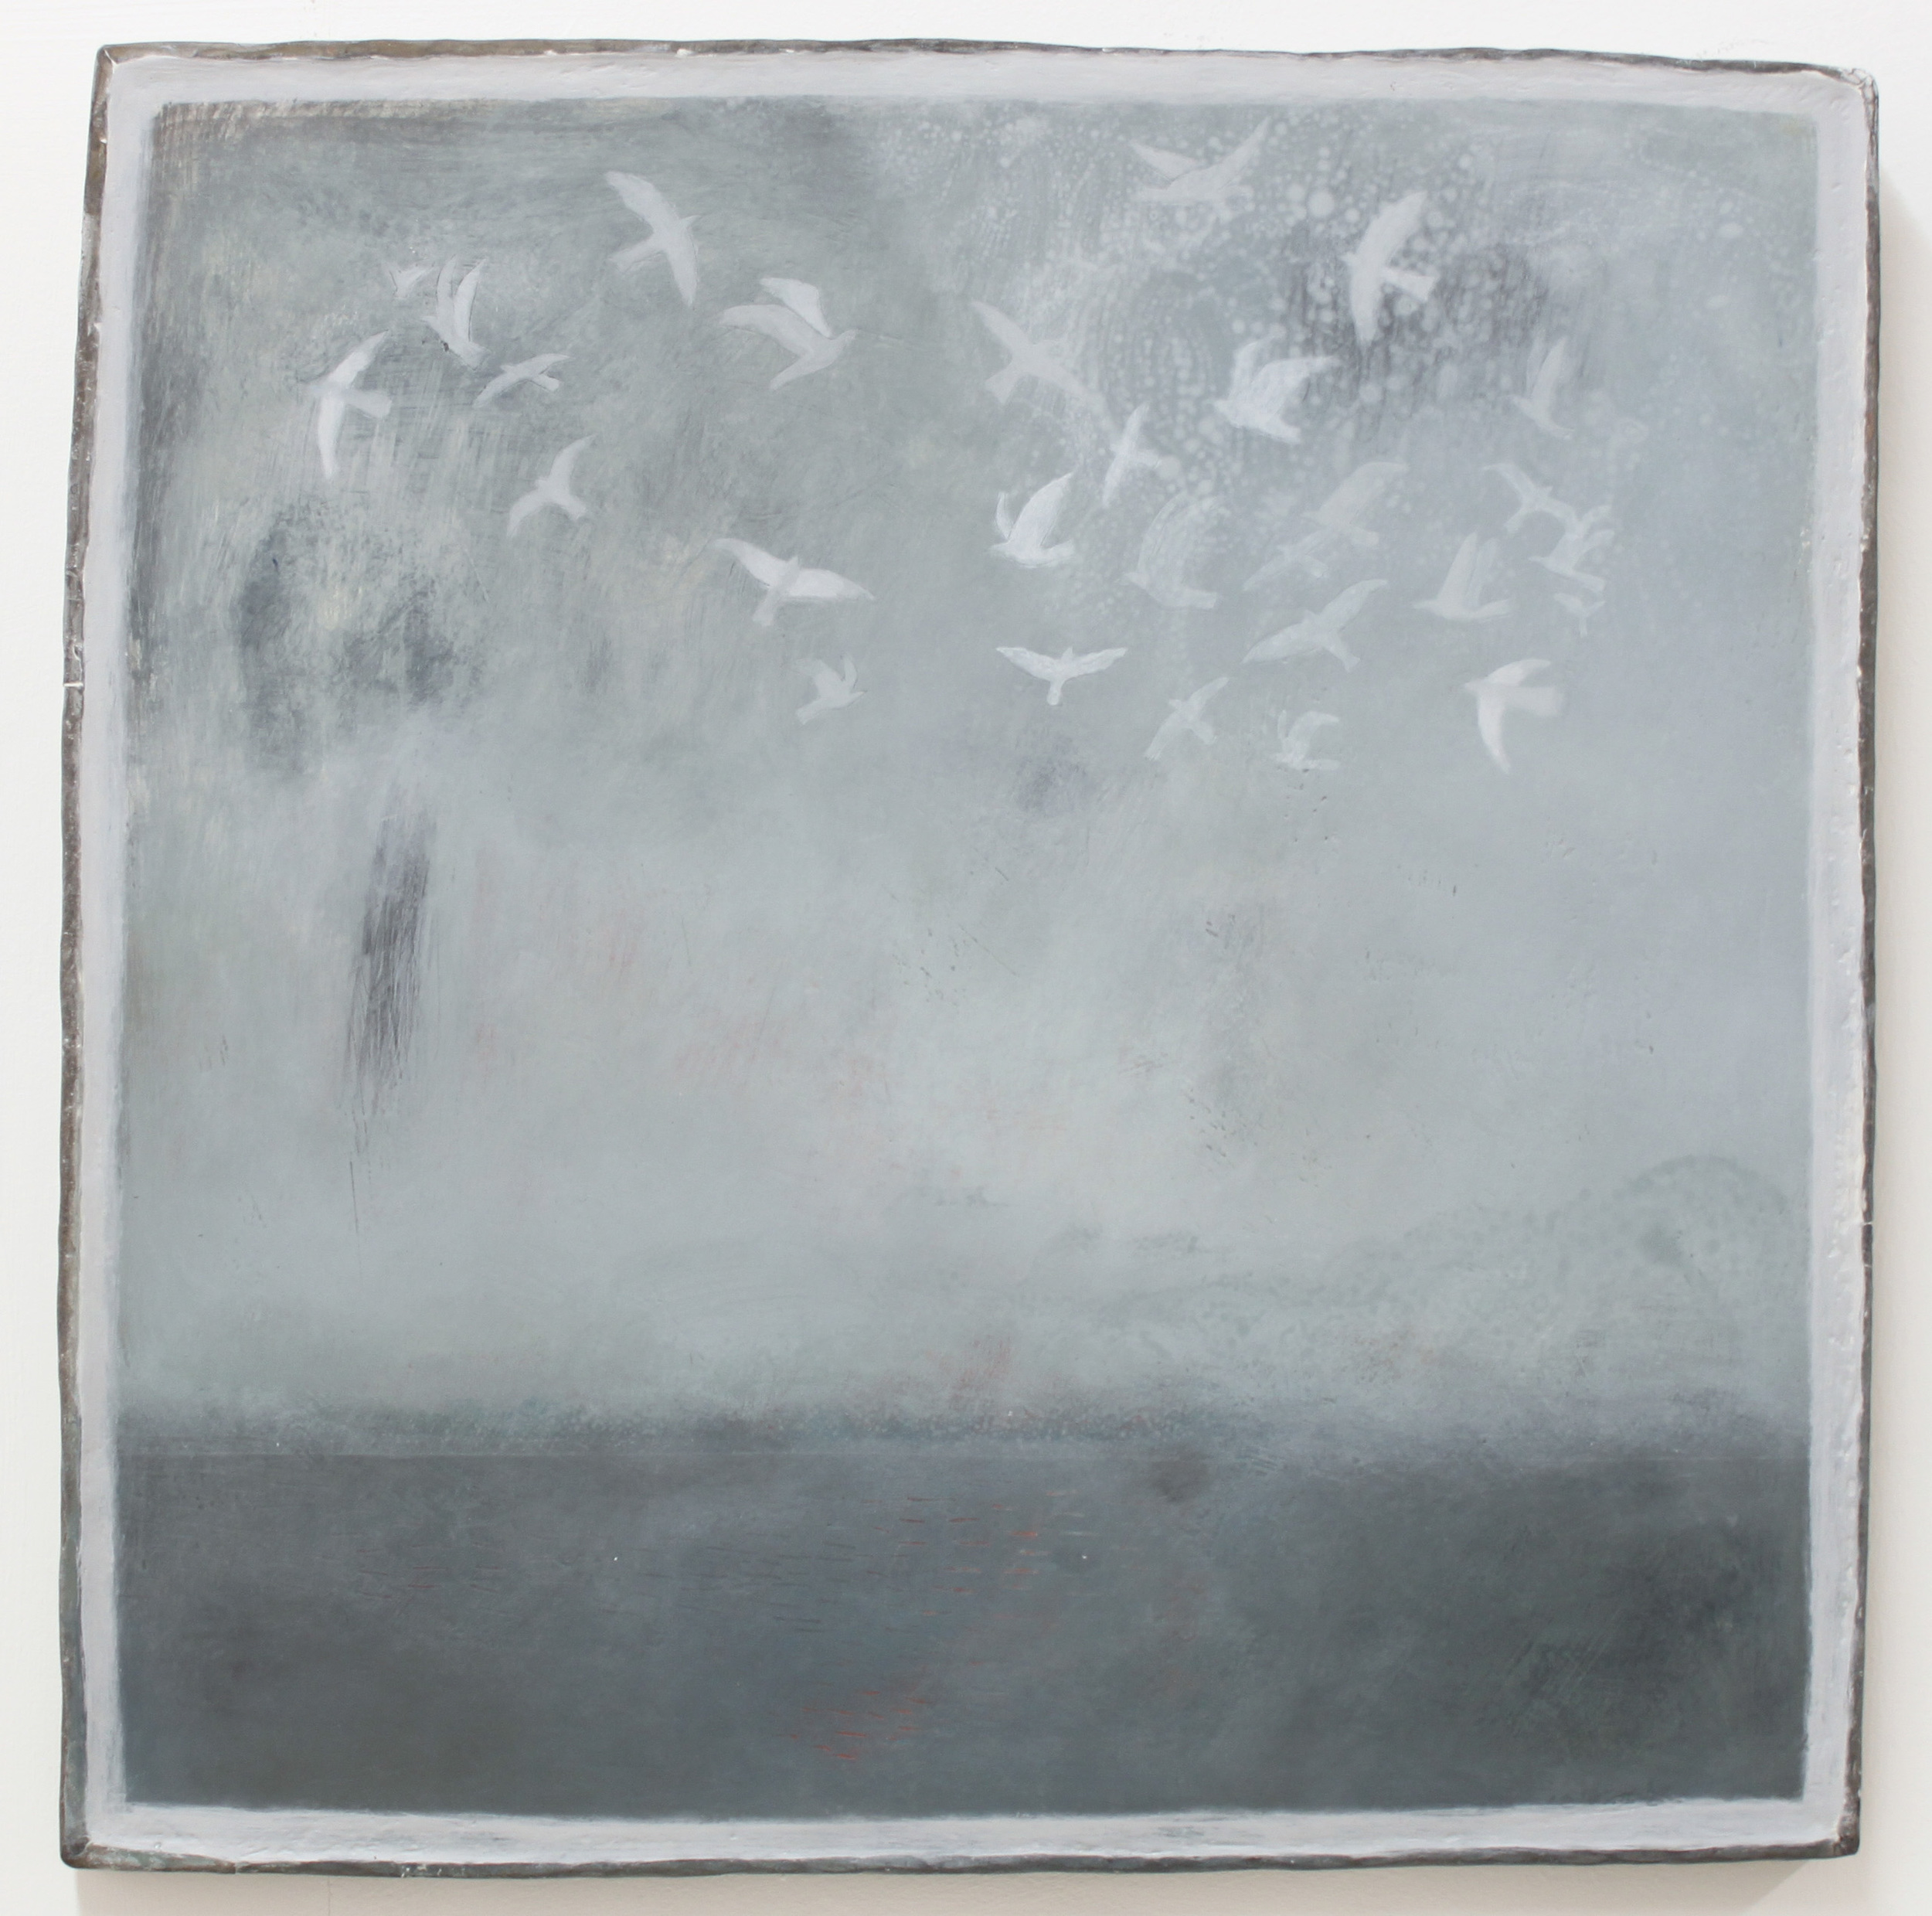 J0 Kehyaian Seagulls 43 x 43 cm natural pigment & gesso on wood with lead frame  S O L D